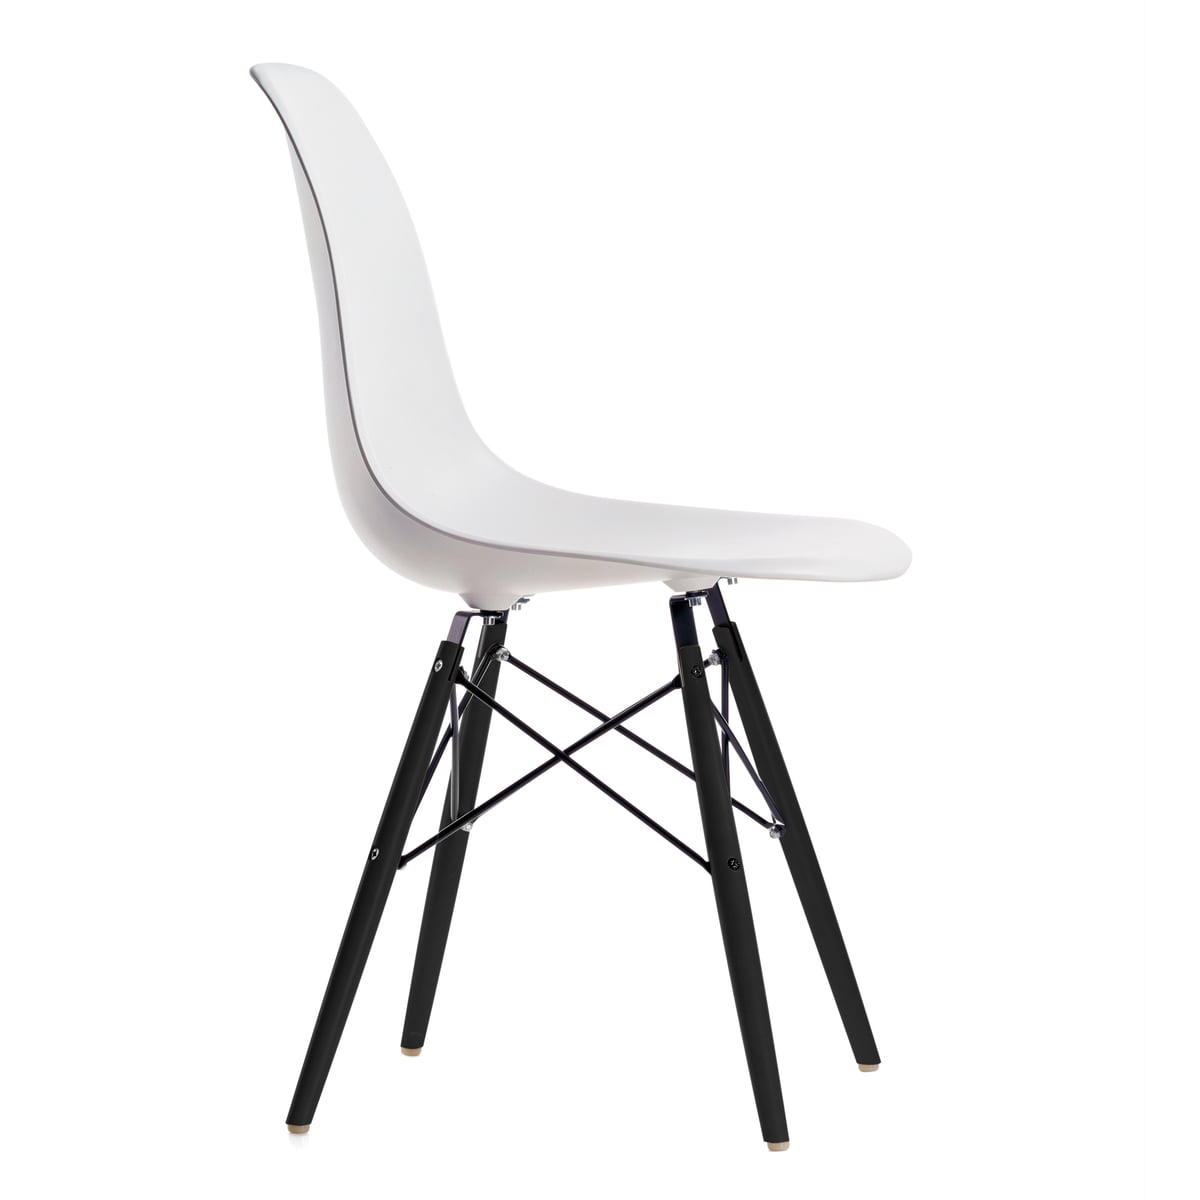 vitra eames plastic side chair dsw h 43 cm ahorn schwarz wei kunststoffgleiter basic. Black Bedroom Furniture Sets. Home Design Ideas